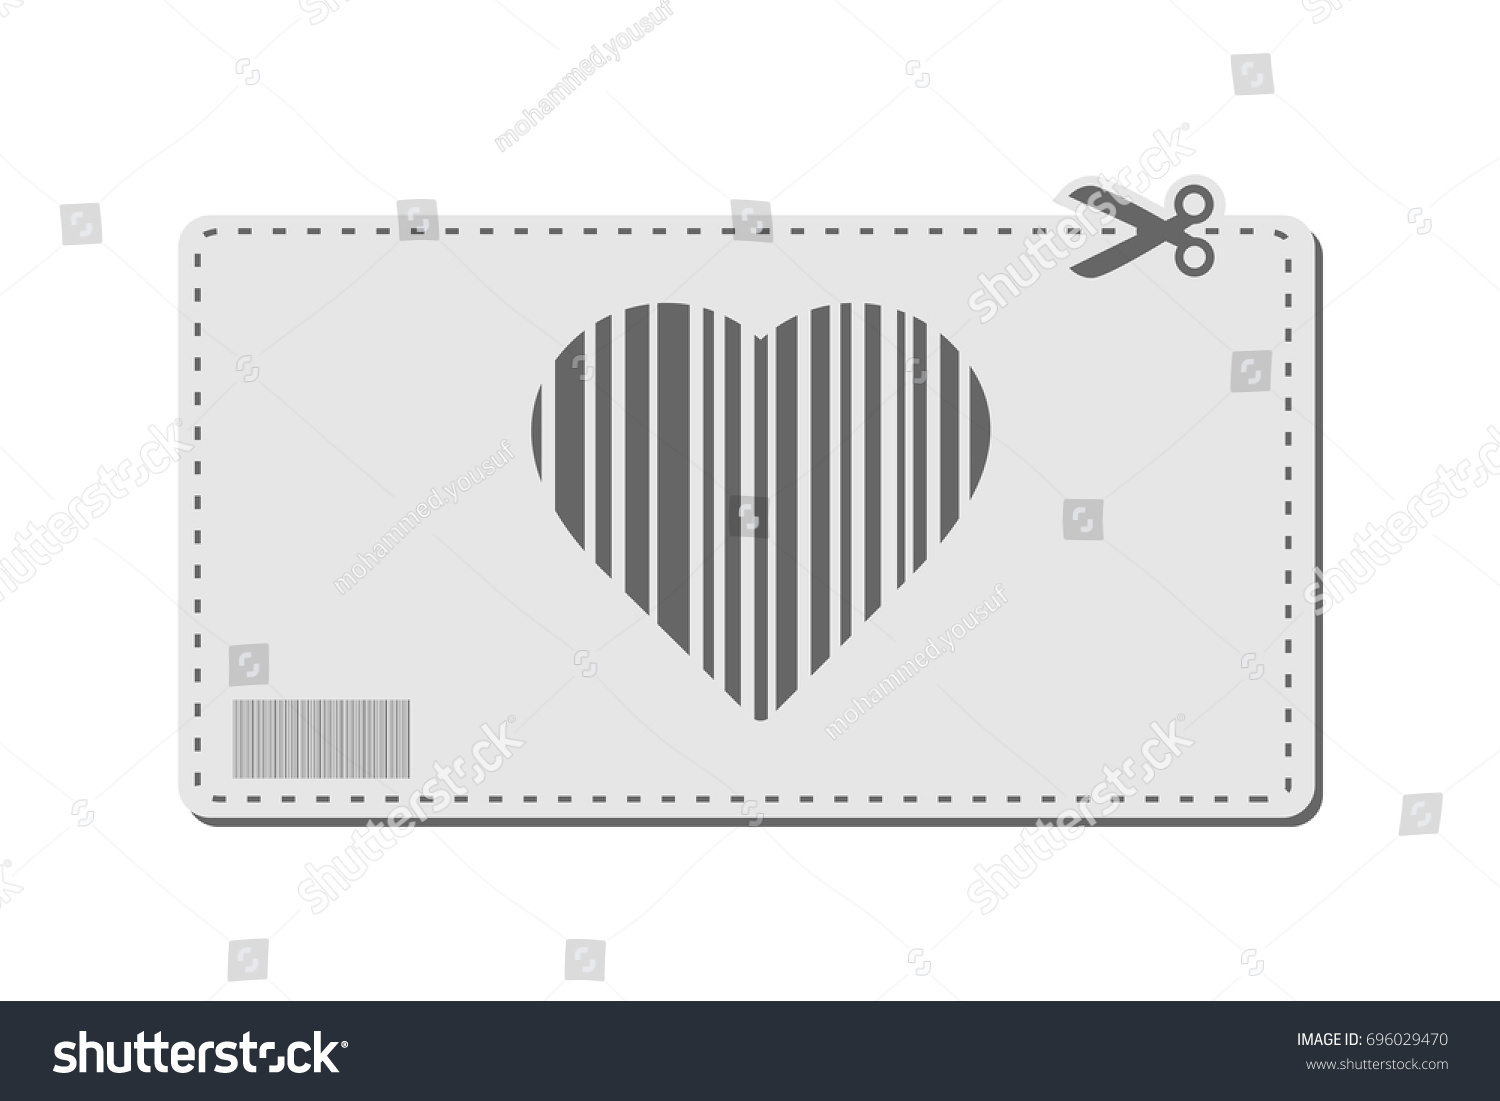 Heart coupon vector bar codes voucher stock vector 696029470 heart coupon vector with bar codes or voucher code or promo code and scissors to cut biocorpaavc